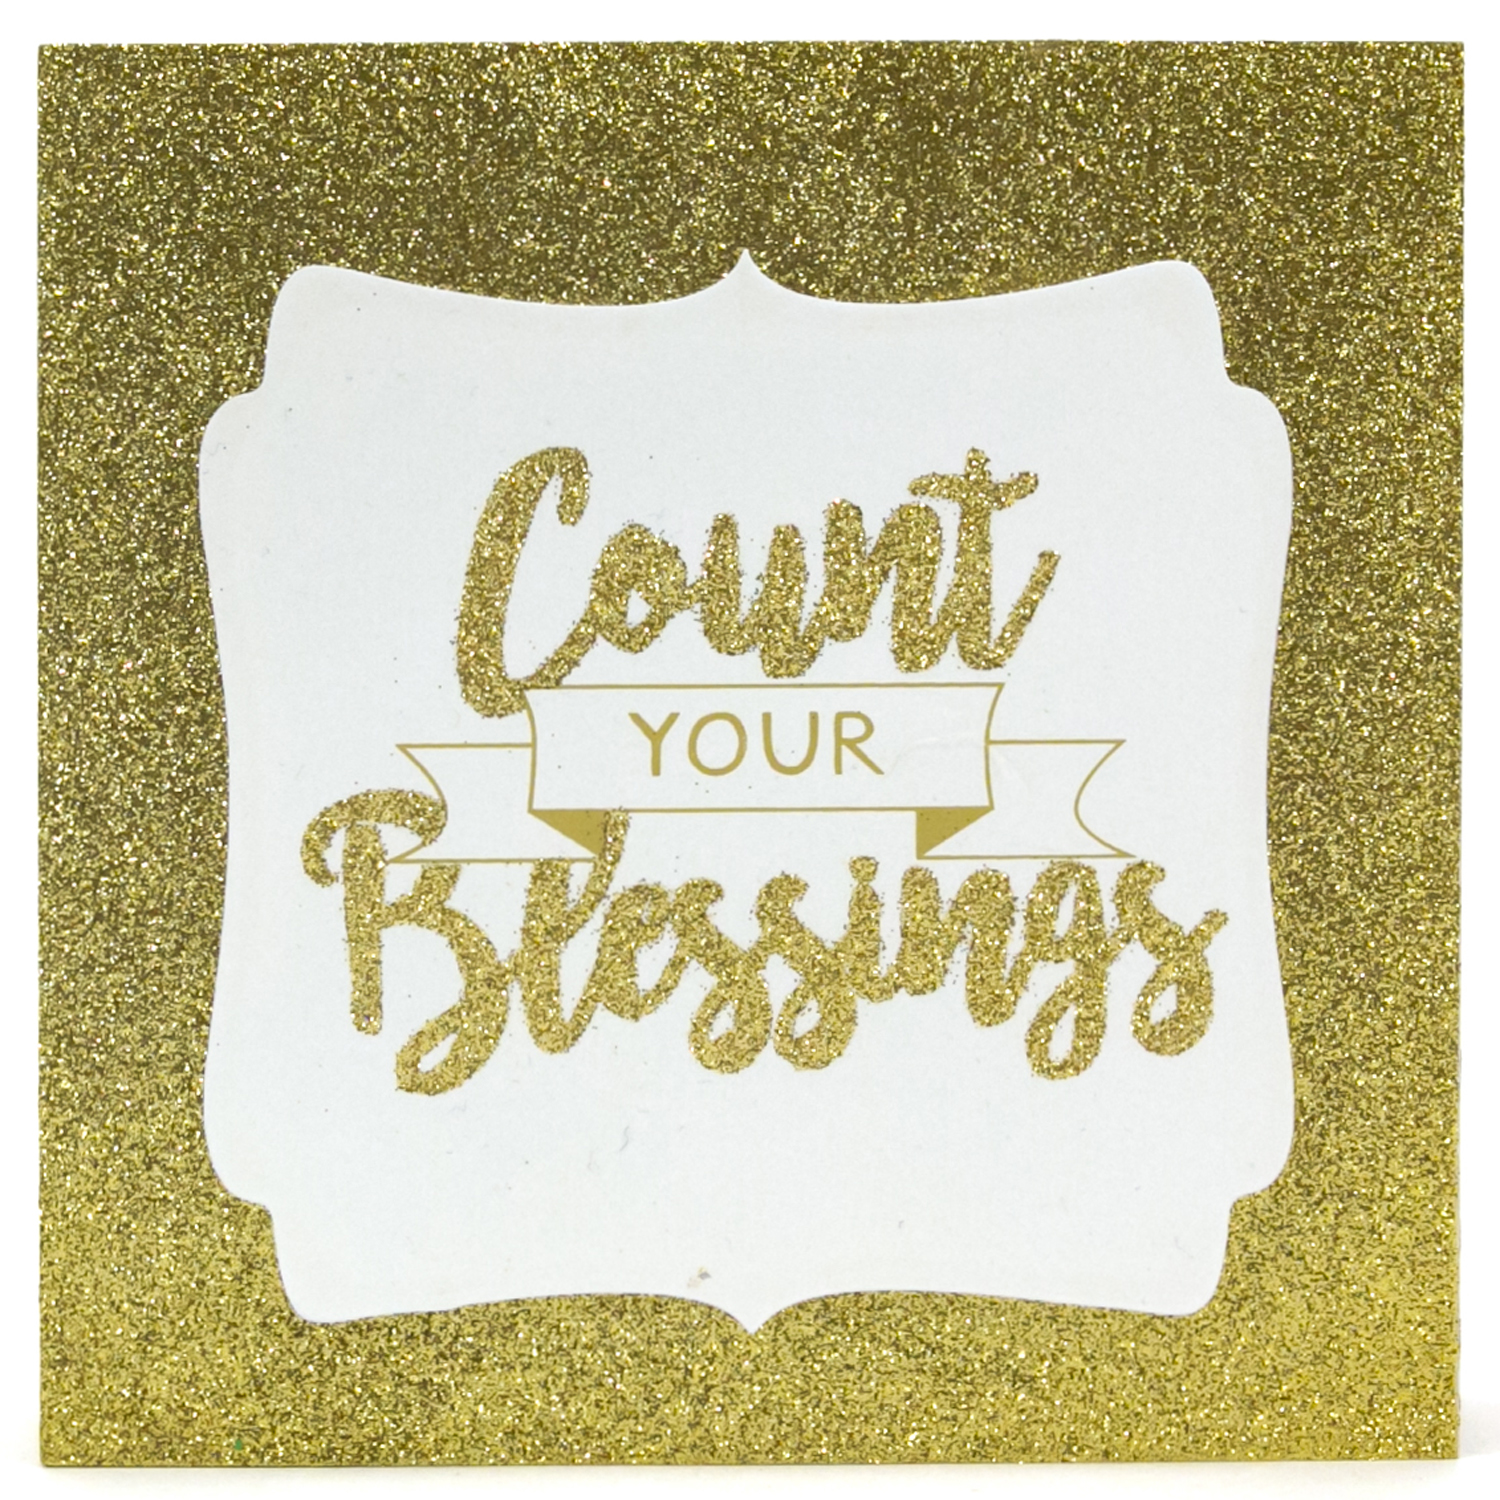 """Count Your Blessings"" Glitter Shadow Box Decor"